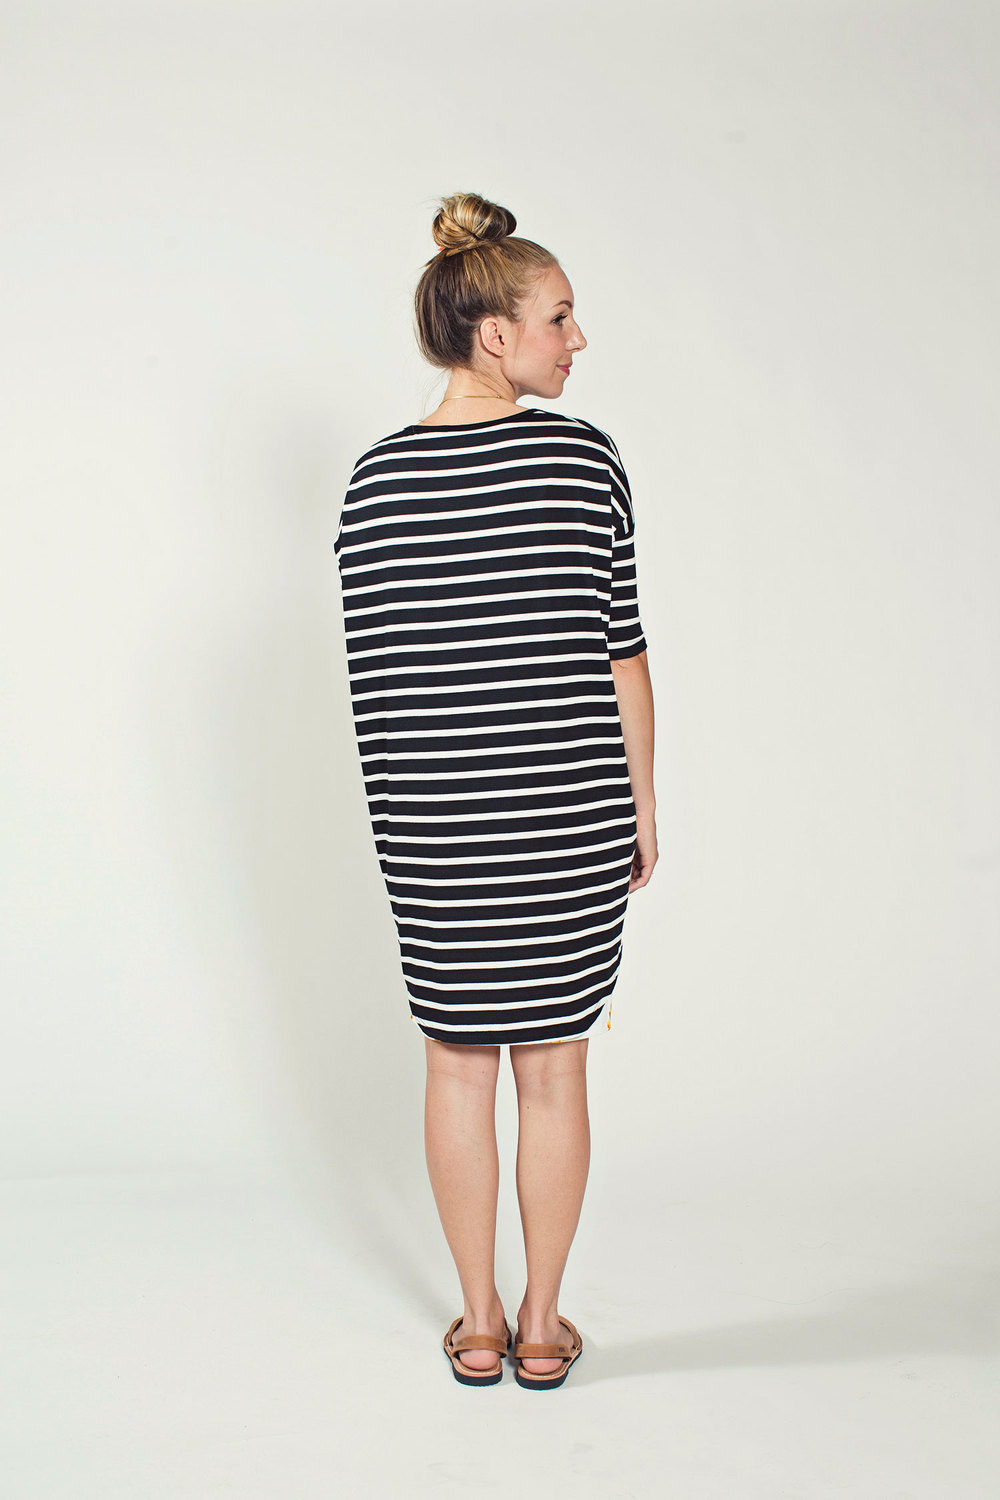 Women s fashion top 9 must haves in the wardrobe lulu rose - Of Course If You Re Anything Like Us You Might Not Know Right Away How To Wear A High Low Tunic Shirt The Shape Is Unique Just Like You Are But Don T Be